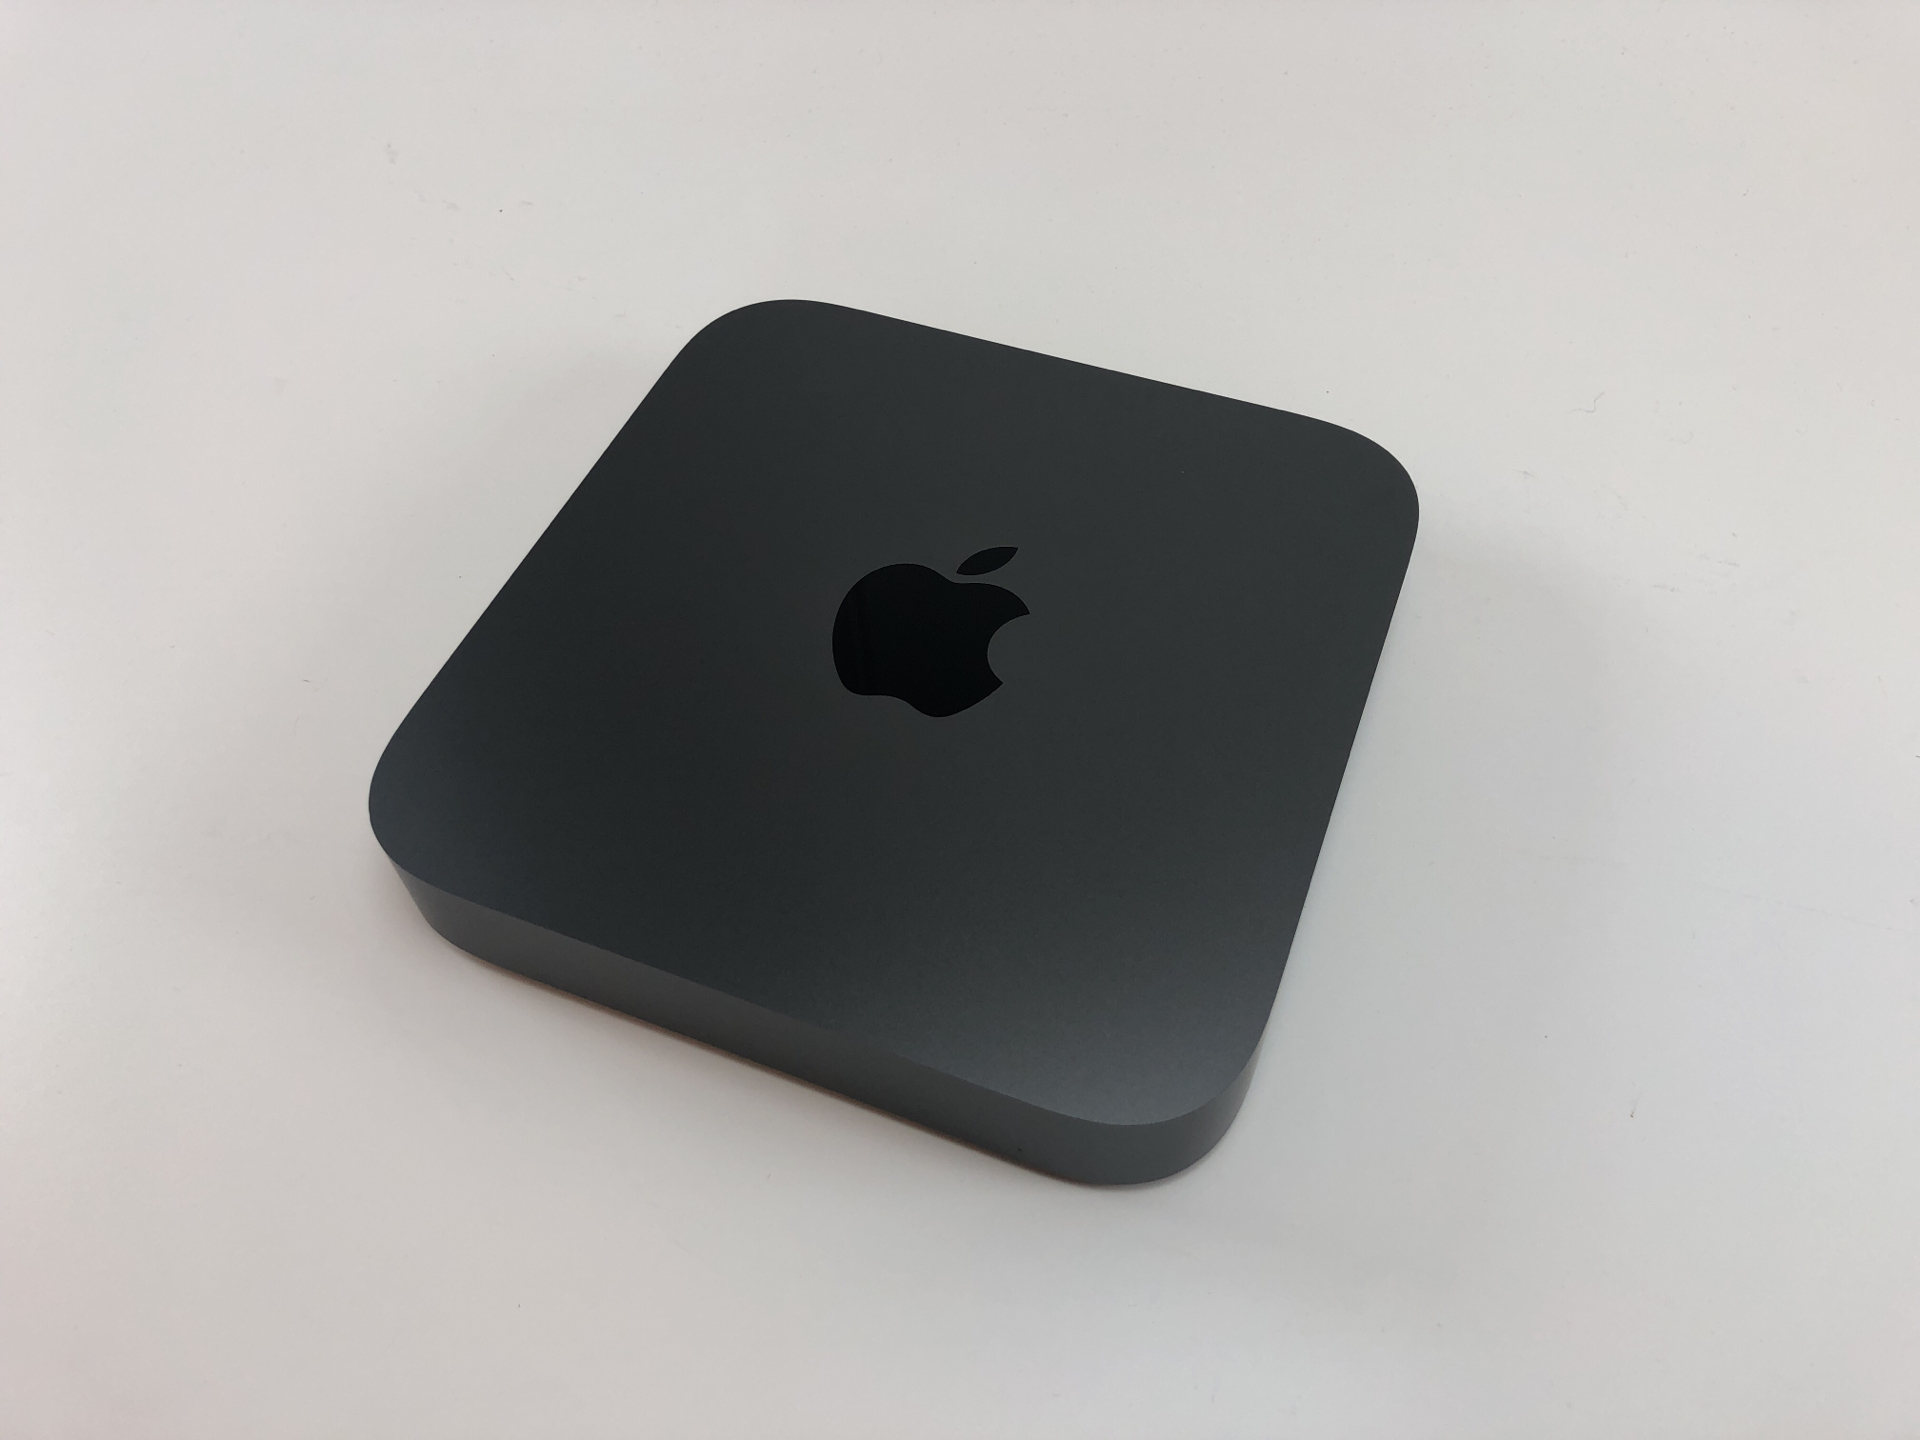 Mac Mini Late 2018 (Intel Quad-Core i3 3.6 GHz 64 GB RAM 128 GB SSD), Intel Quad-Core i3 3.6 GHz, 64 GB RAM, 128 GB SSD, Bild 1